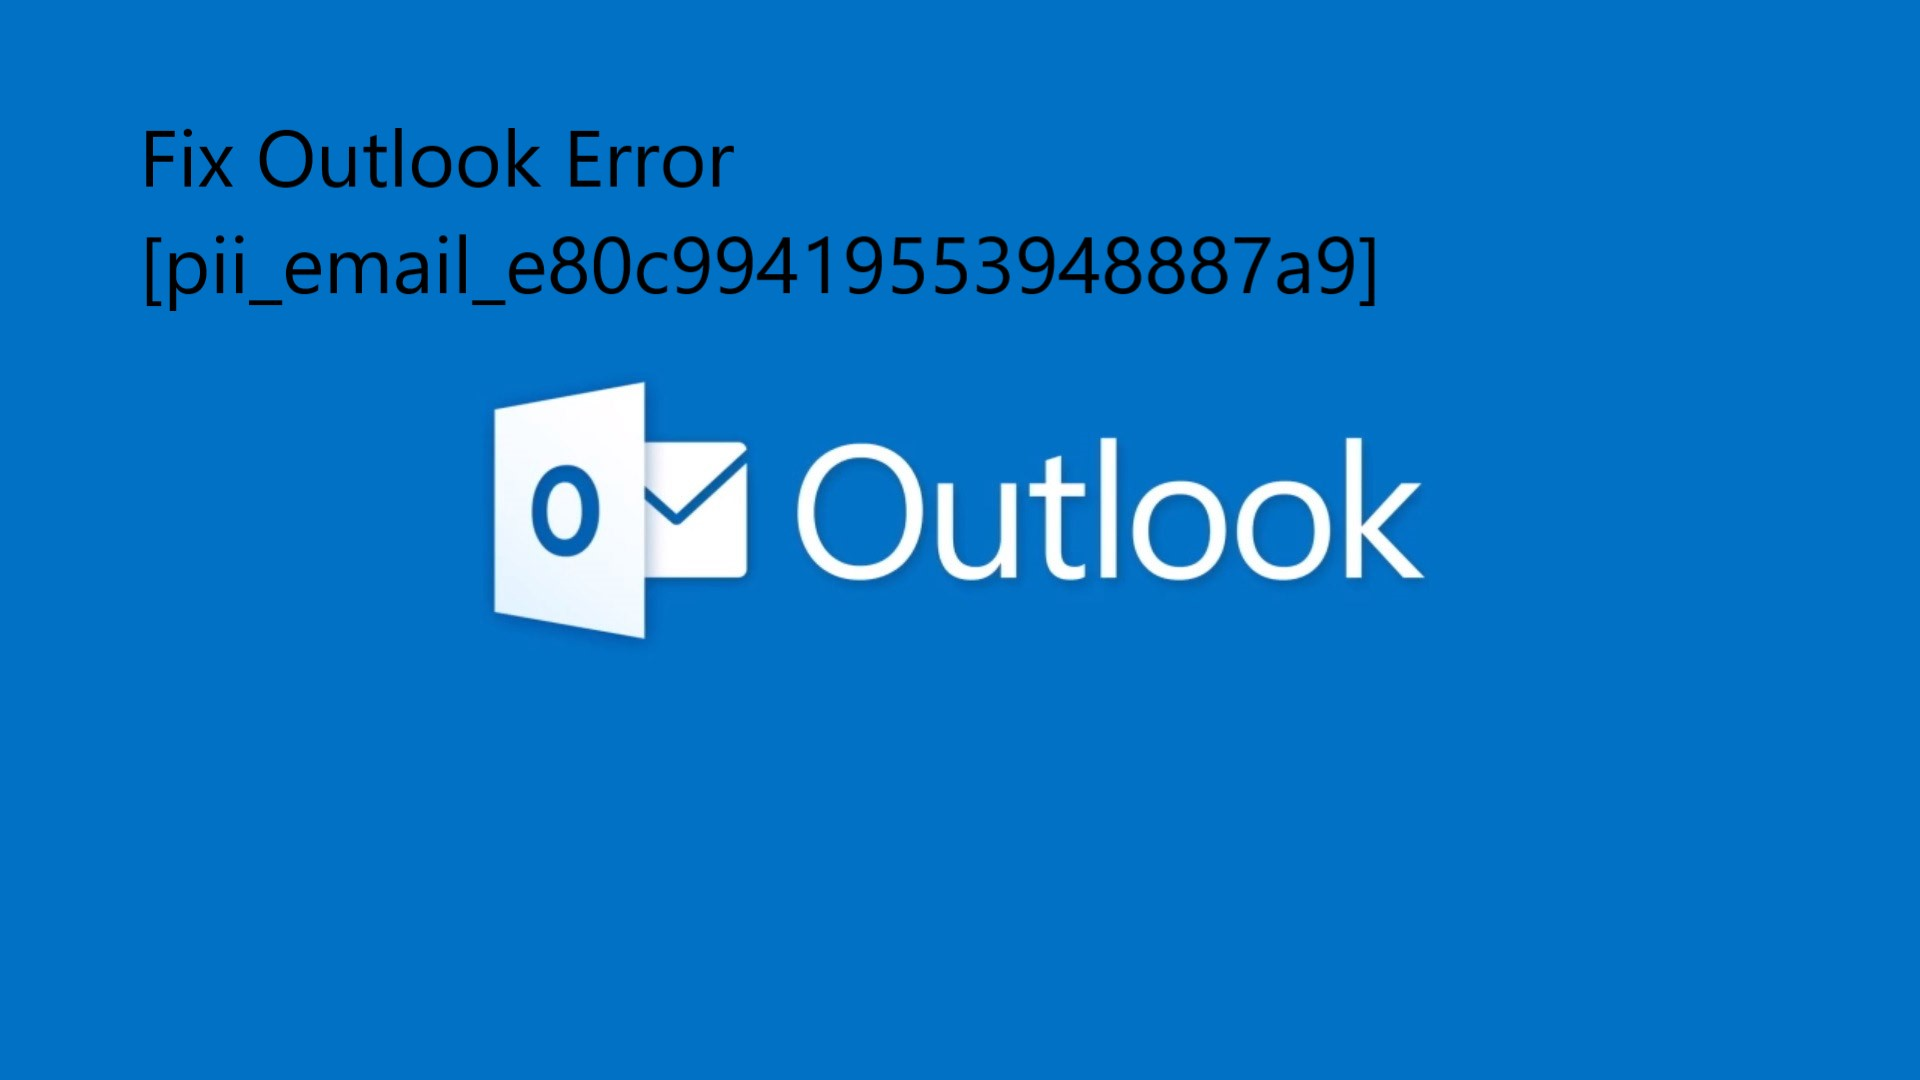 Fix Outlook Error [pii_email_e80c99419553948887a9]